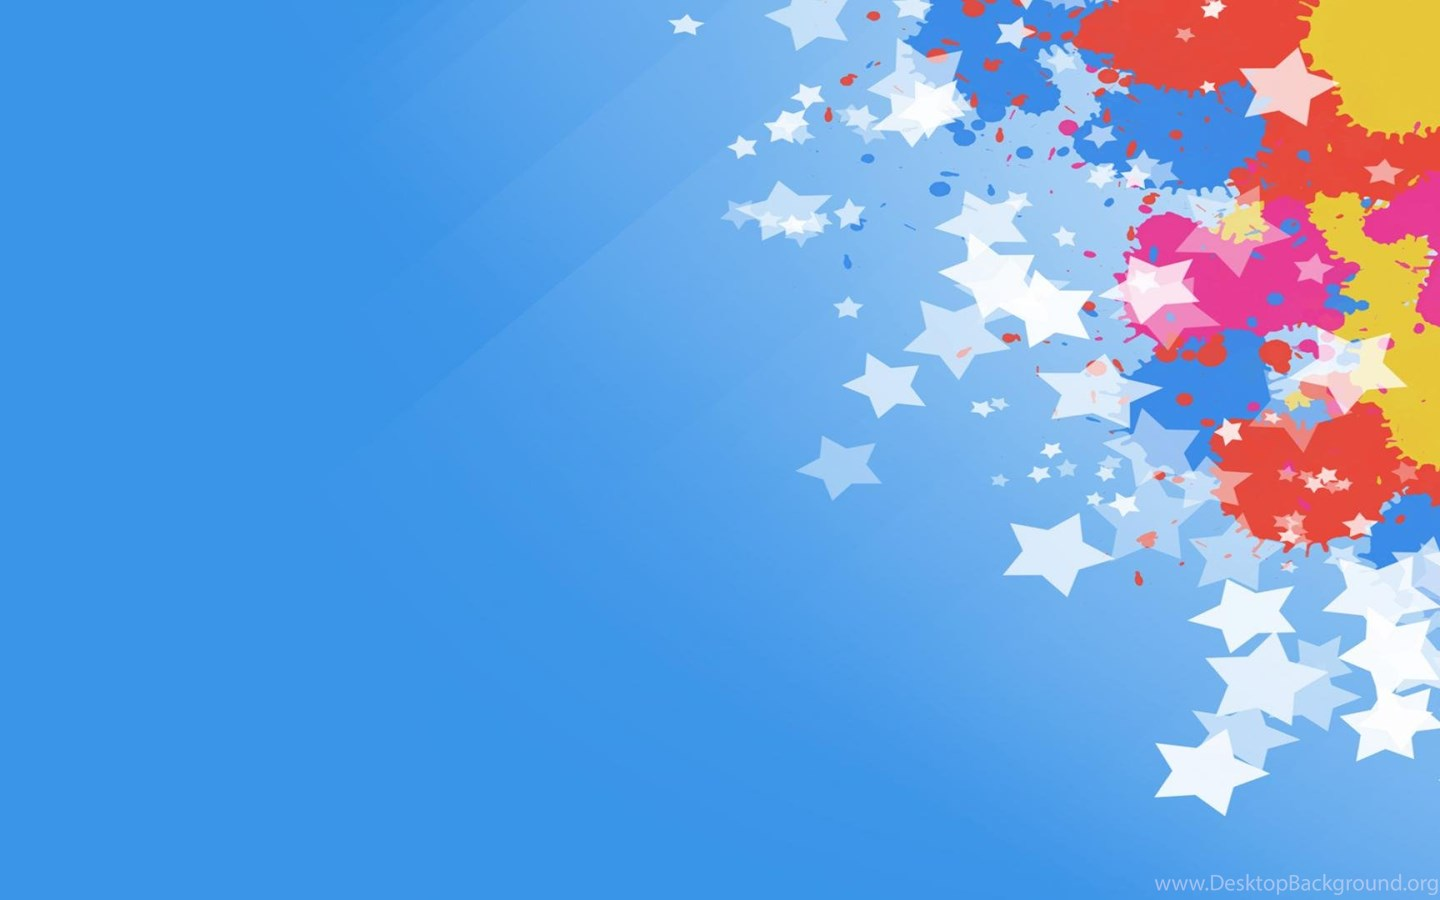 Celebration Background Hd: 8 Celebration Backgrounds Hd Wallpapers 1920x1080